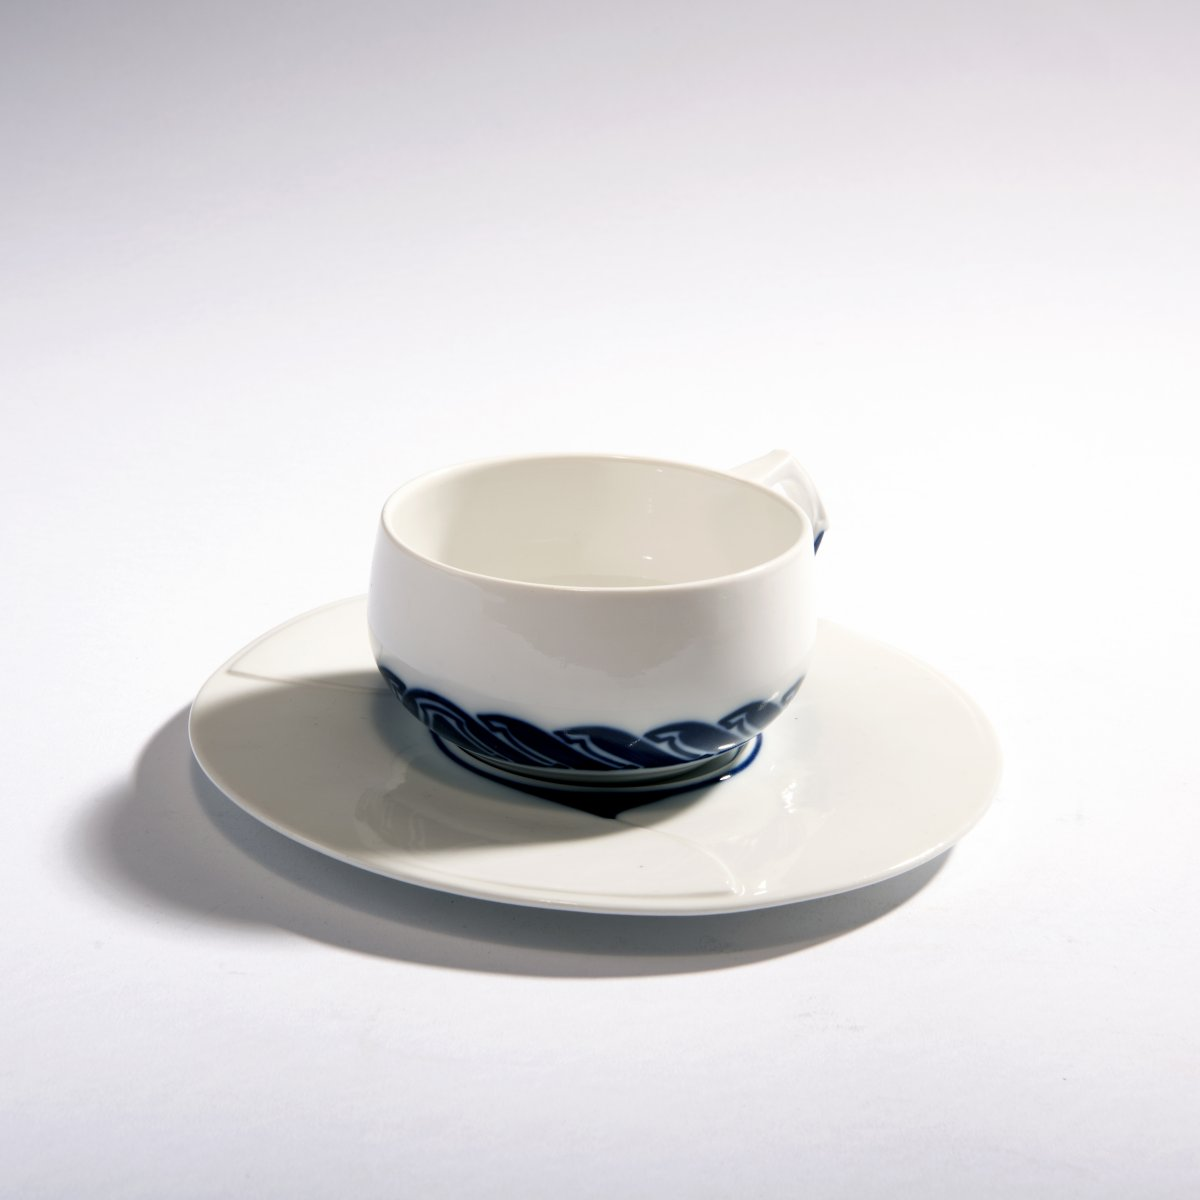 Lot 24 - Henry van de Velde, Teacup and saucer, 1903/04Teacup and saucer, 1903/04H. 5.8 cm. Made by KPM